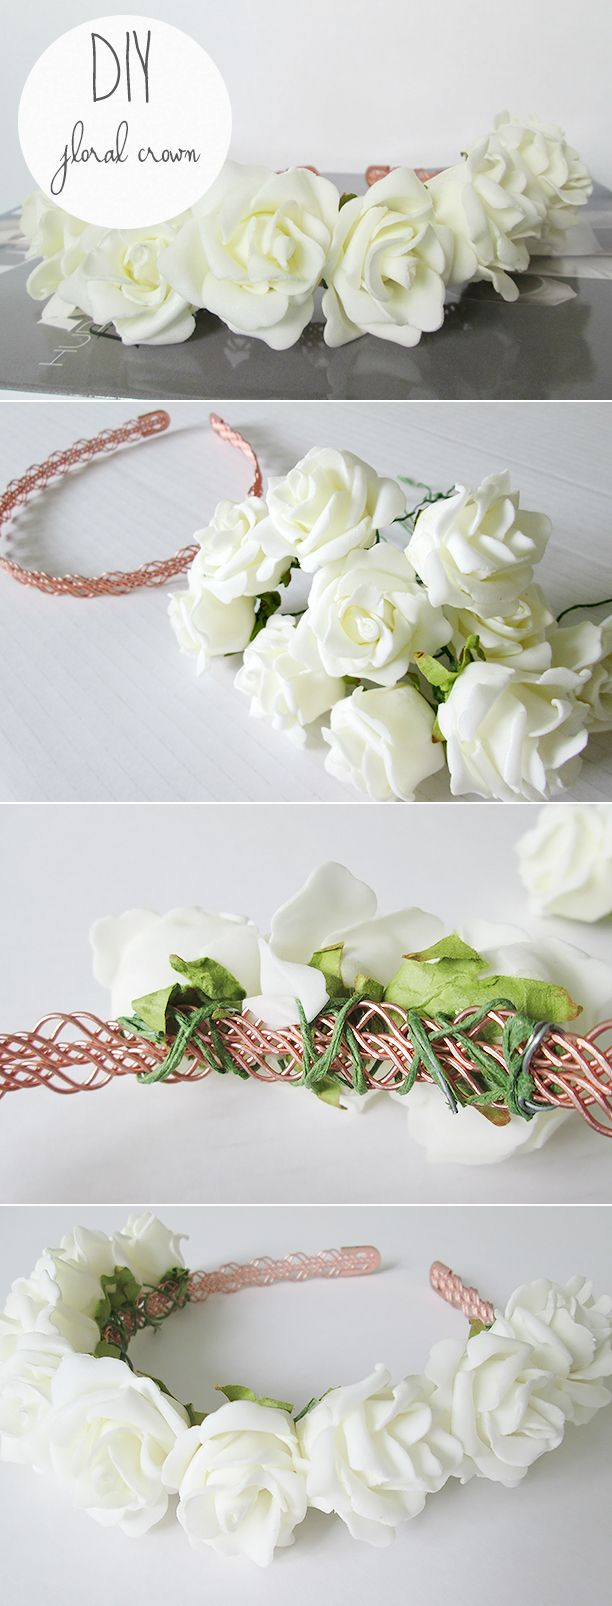 DIY Floral Crown - Nouvelle Daily